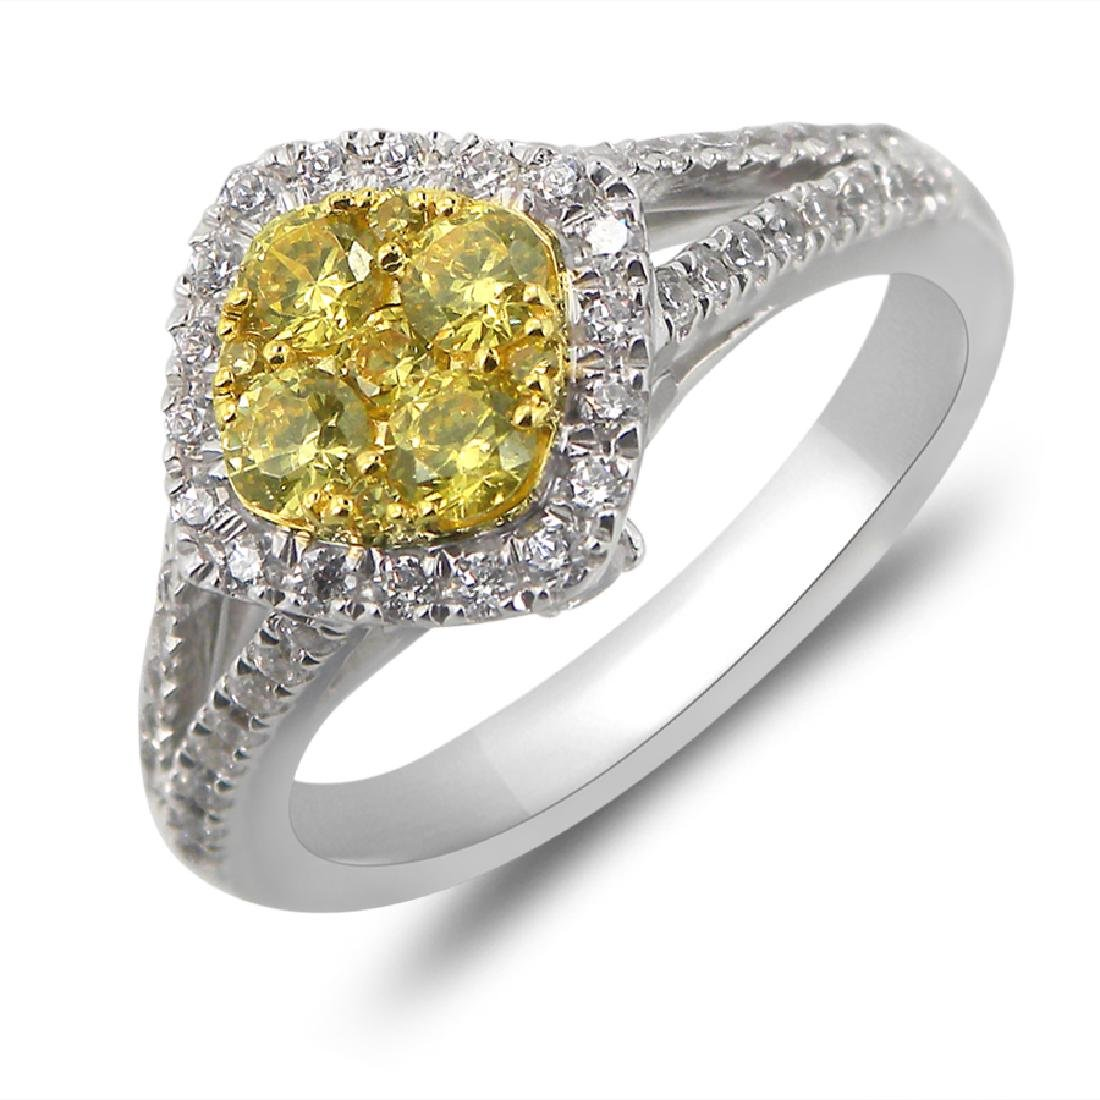 1.02 CTW Diamond & Yellow Diamond Ring 14K 2Tone Gold -